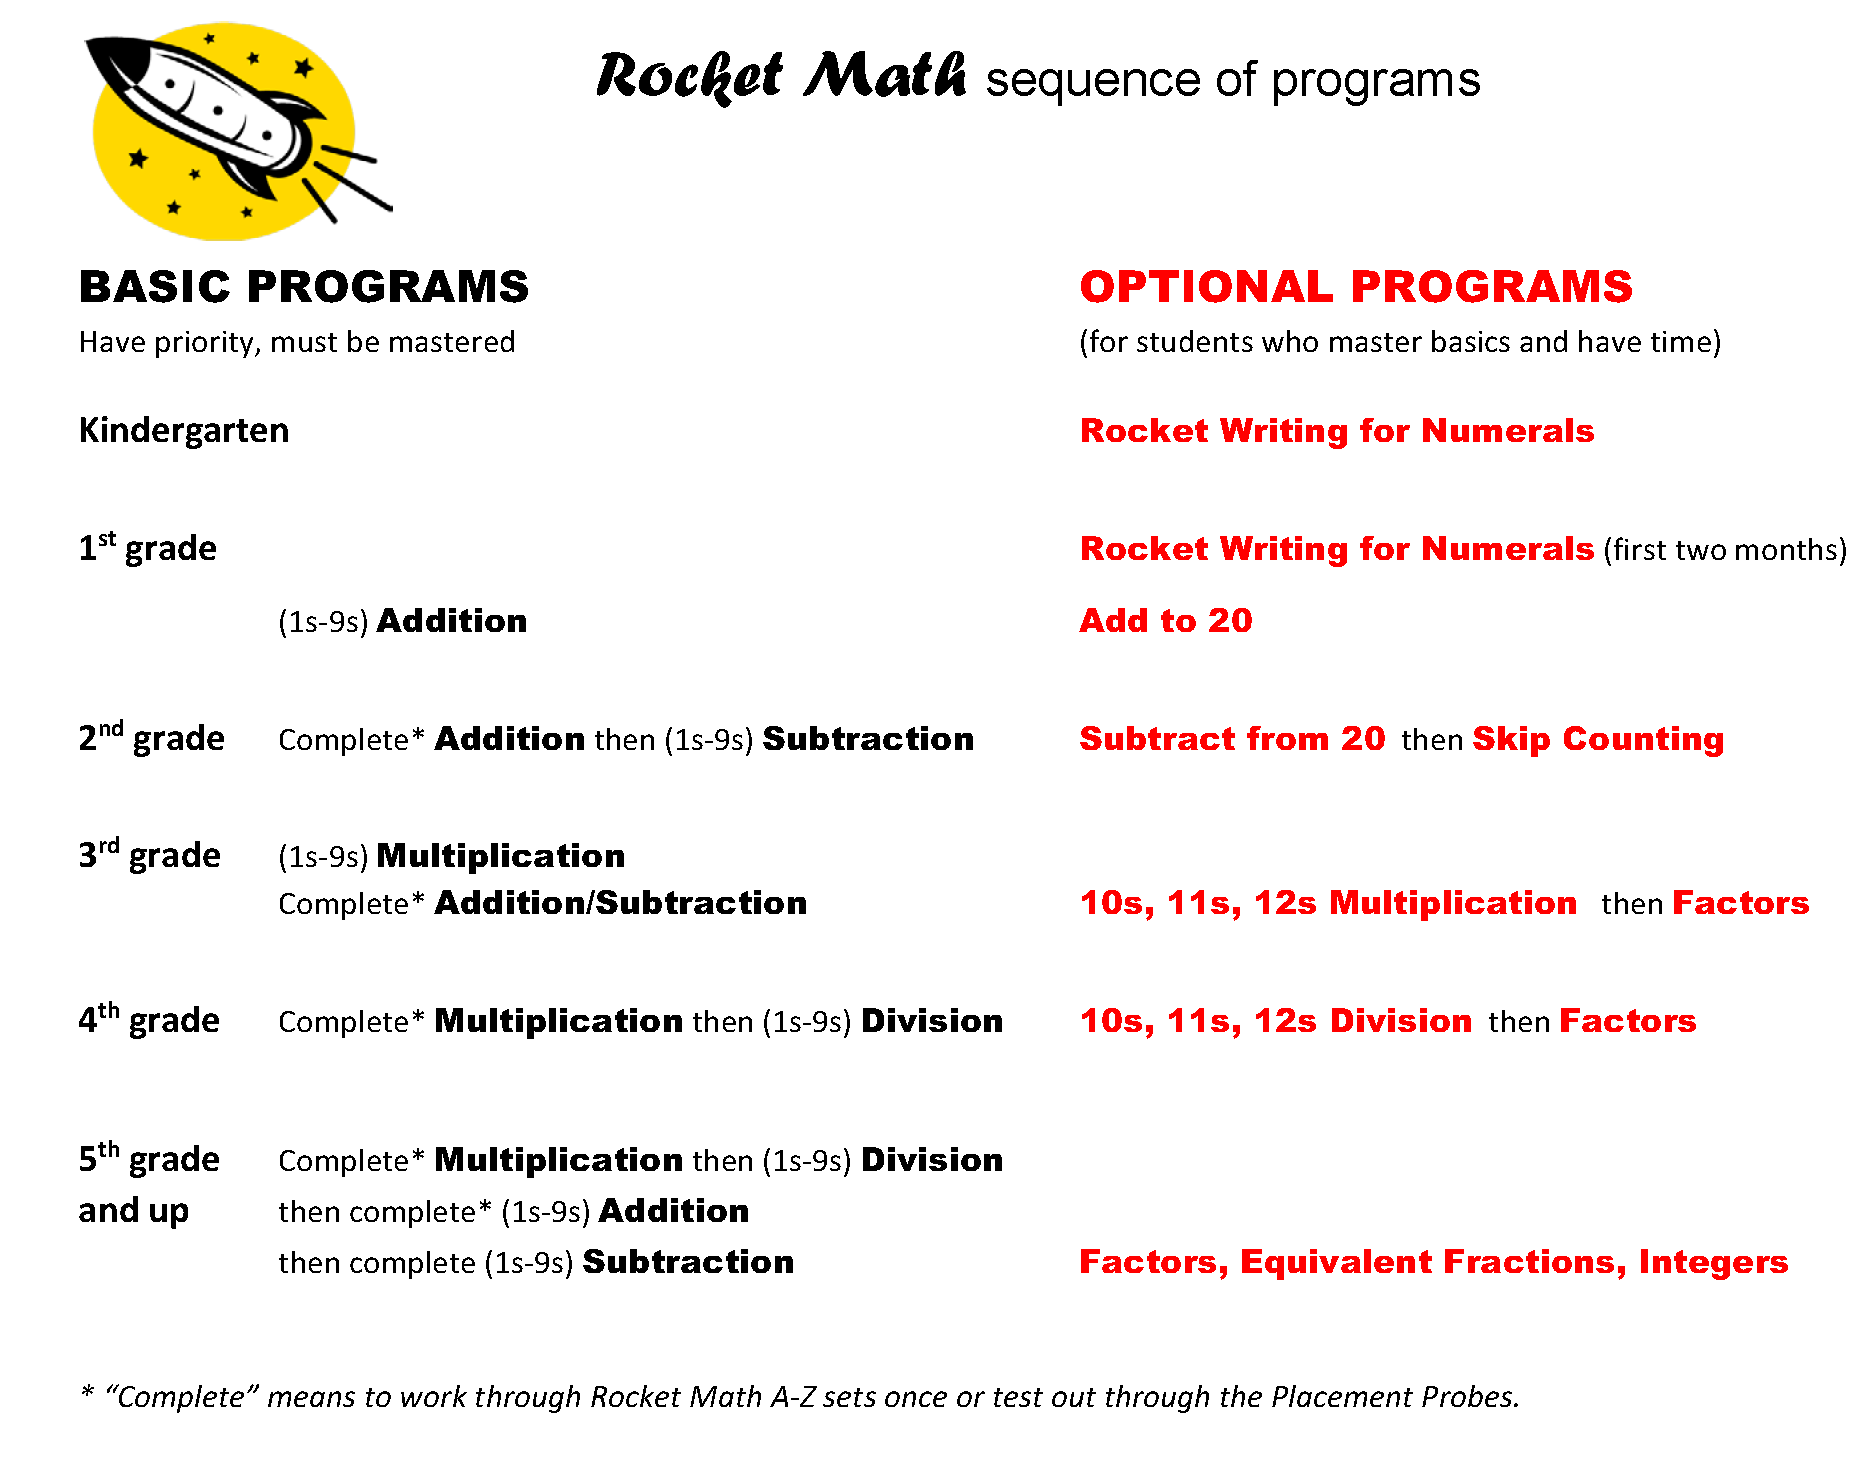 The best sequence for Rocket Math programs | Rocket Math